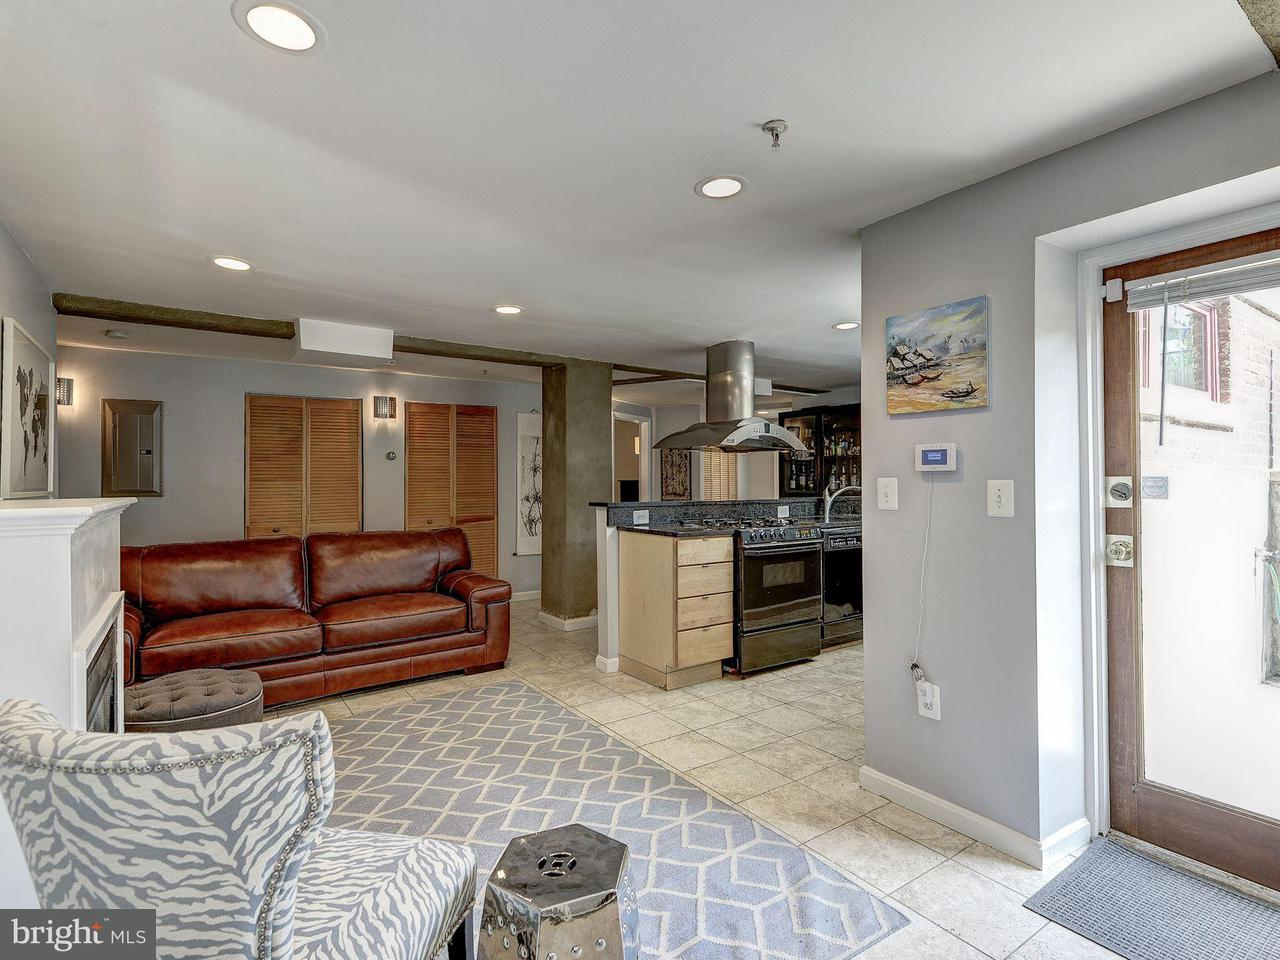 Townhouse for Sale at 70 RHODE ISLAND AVE NW #103 70 RHODE ISLAND AVE NW #103 Washington, District Of Columbia 20001 United States